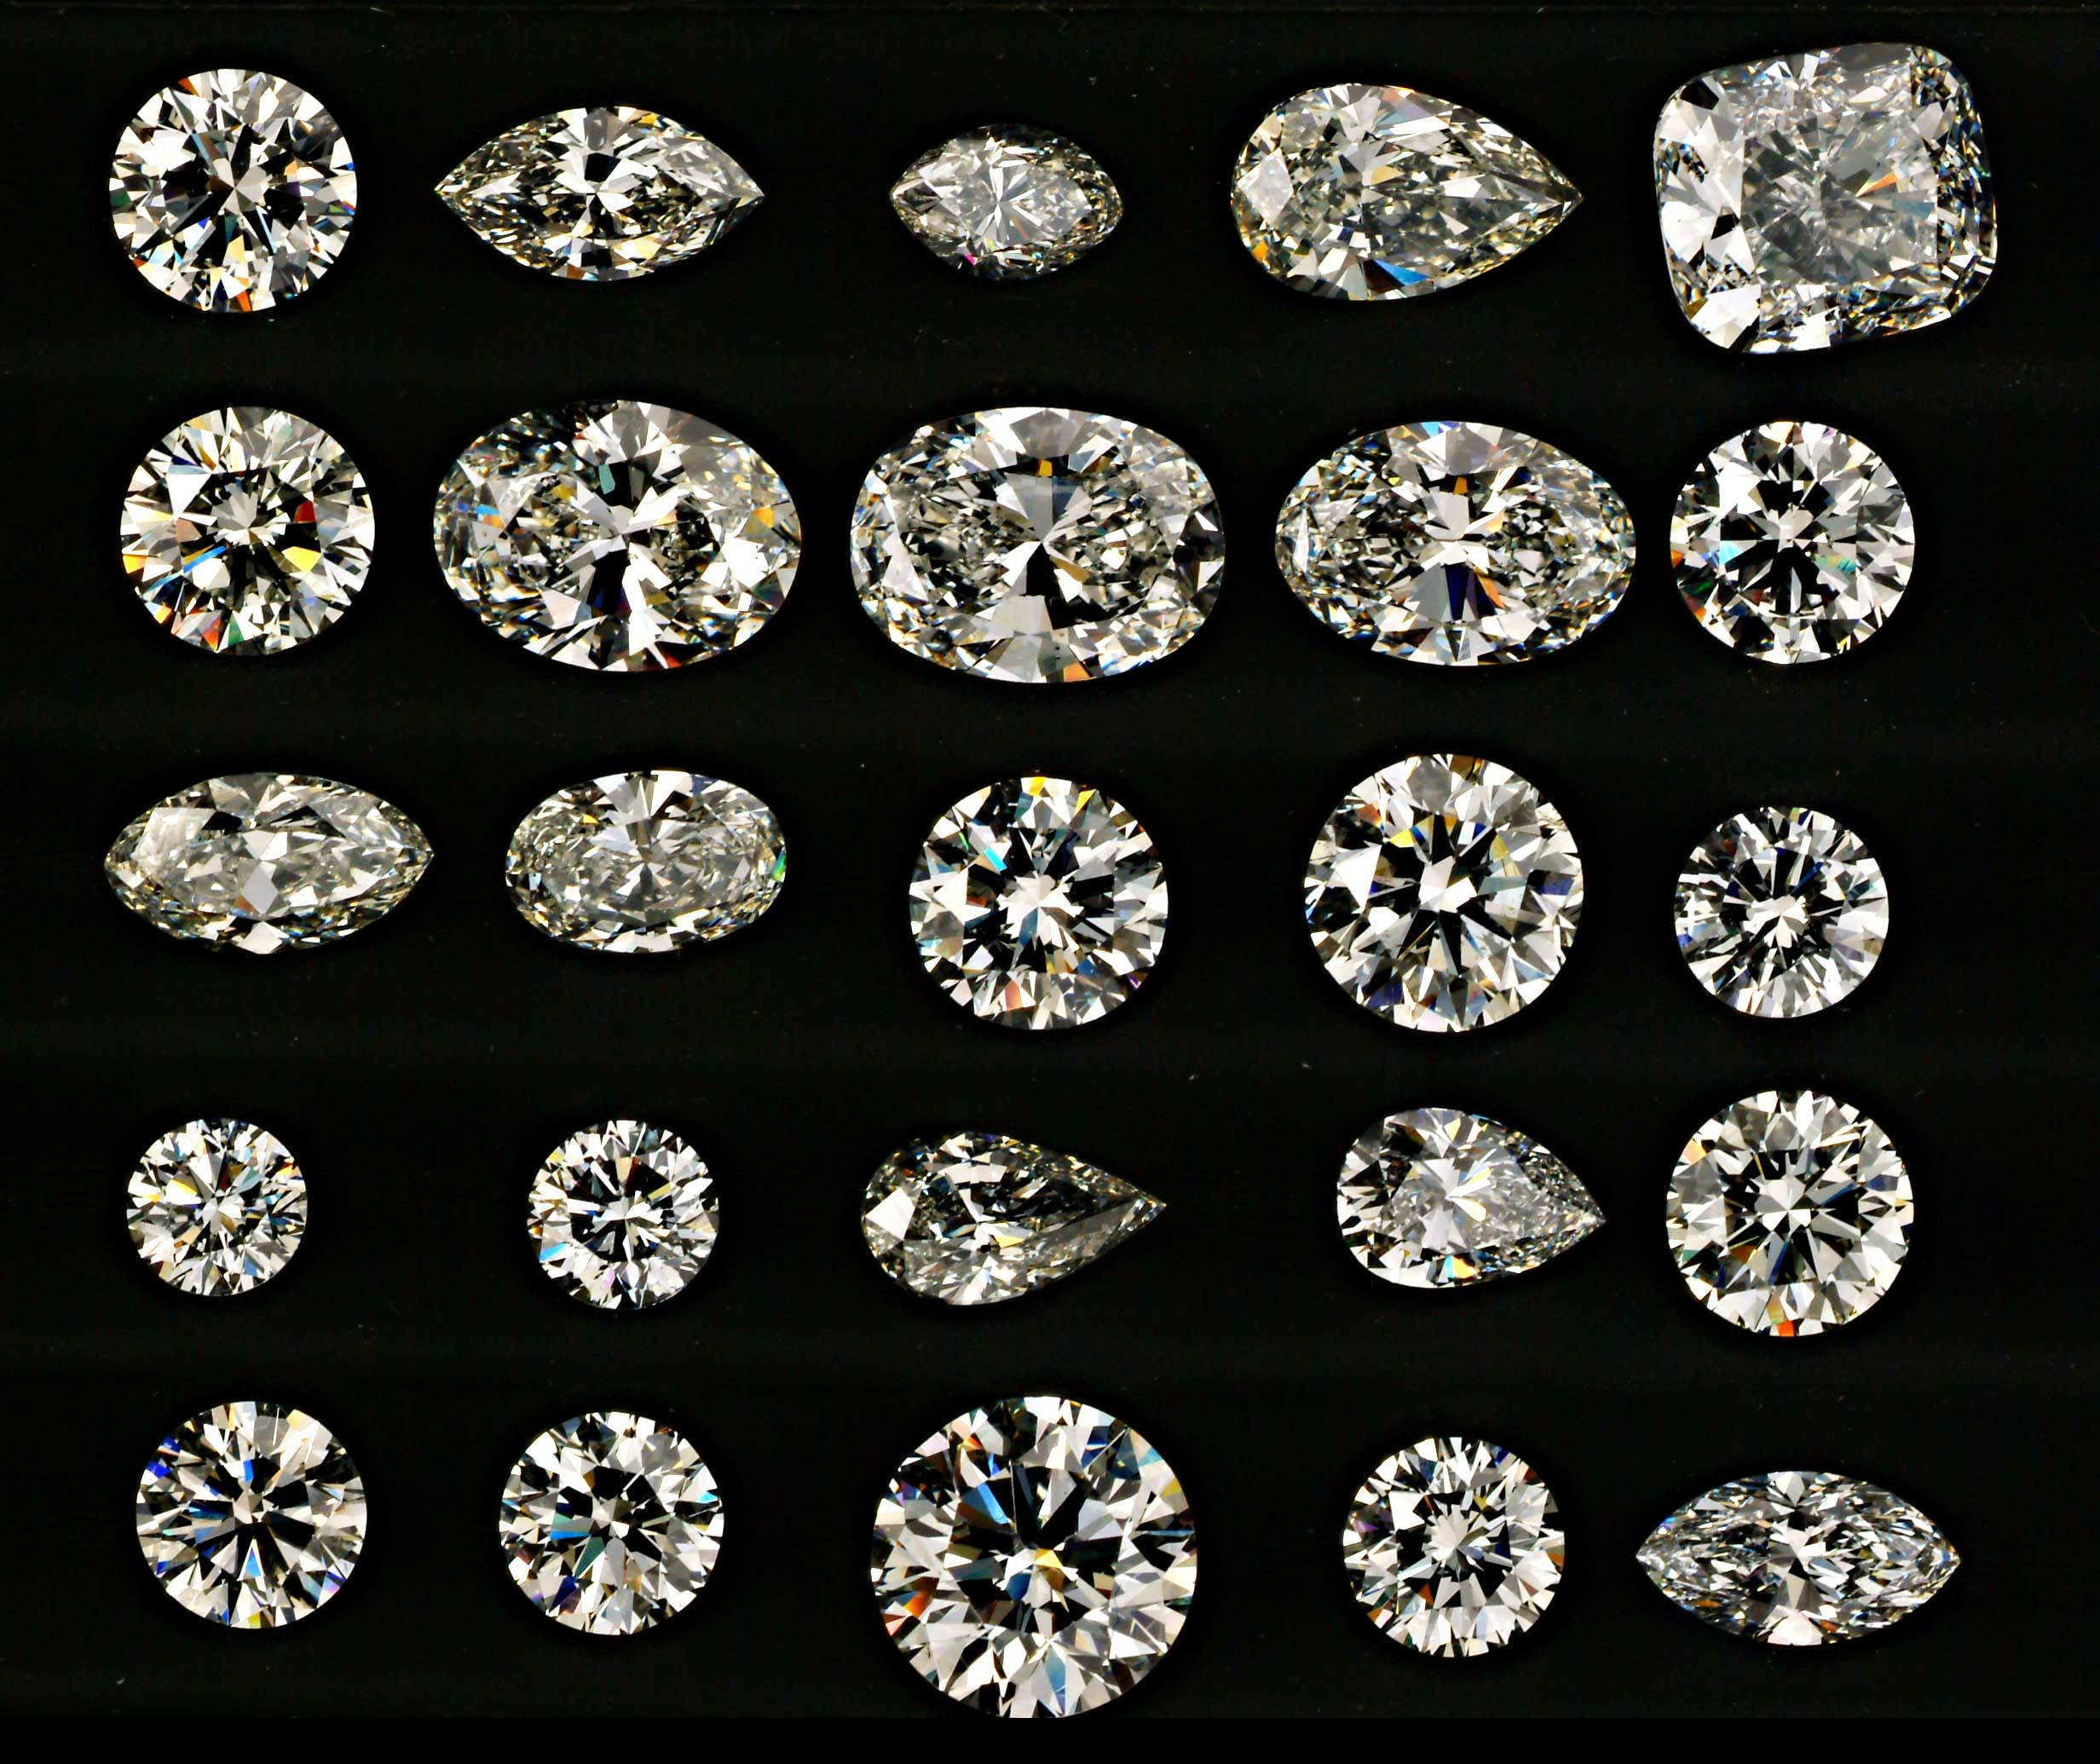 langerman around qg fluorescence blue strong quality coloured diamonds encyclopedia color grading diamond debates col